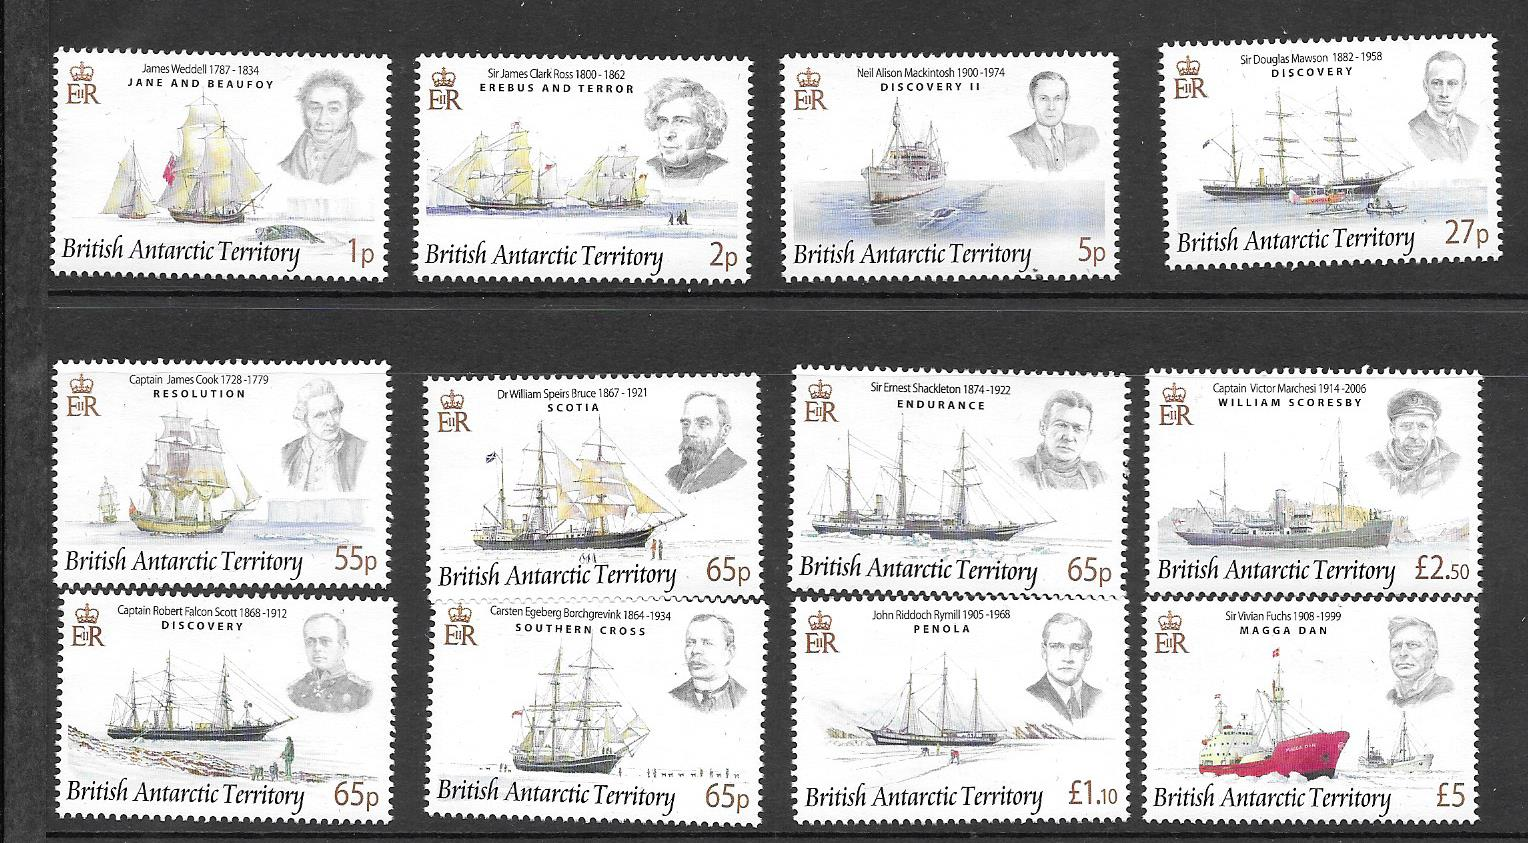 Explorers and Ships Set Stamps 2008